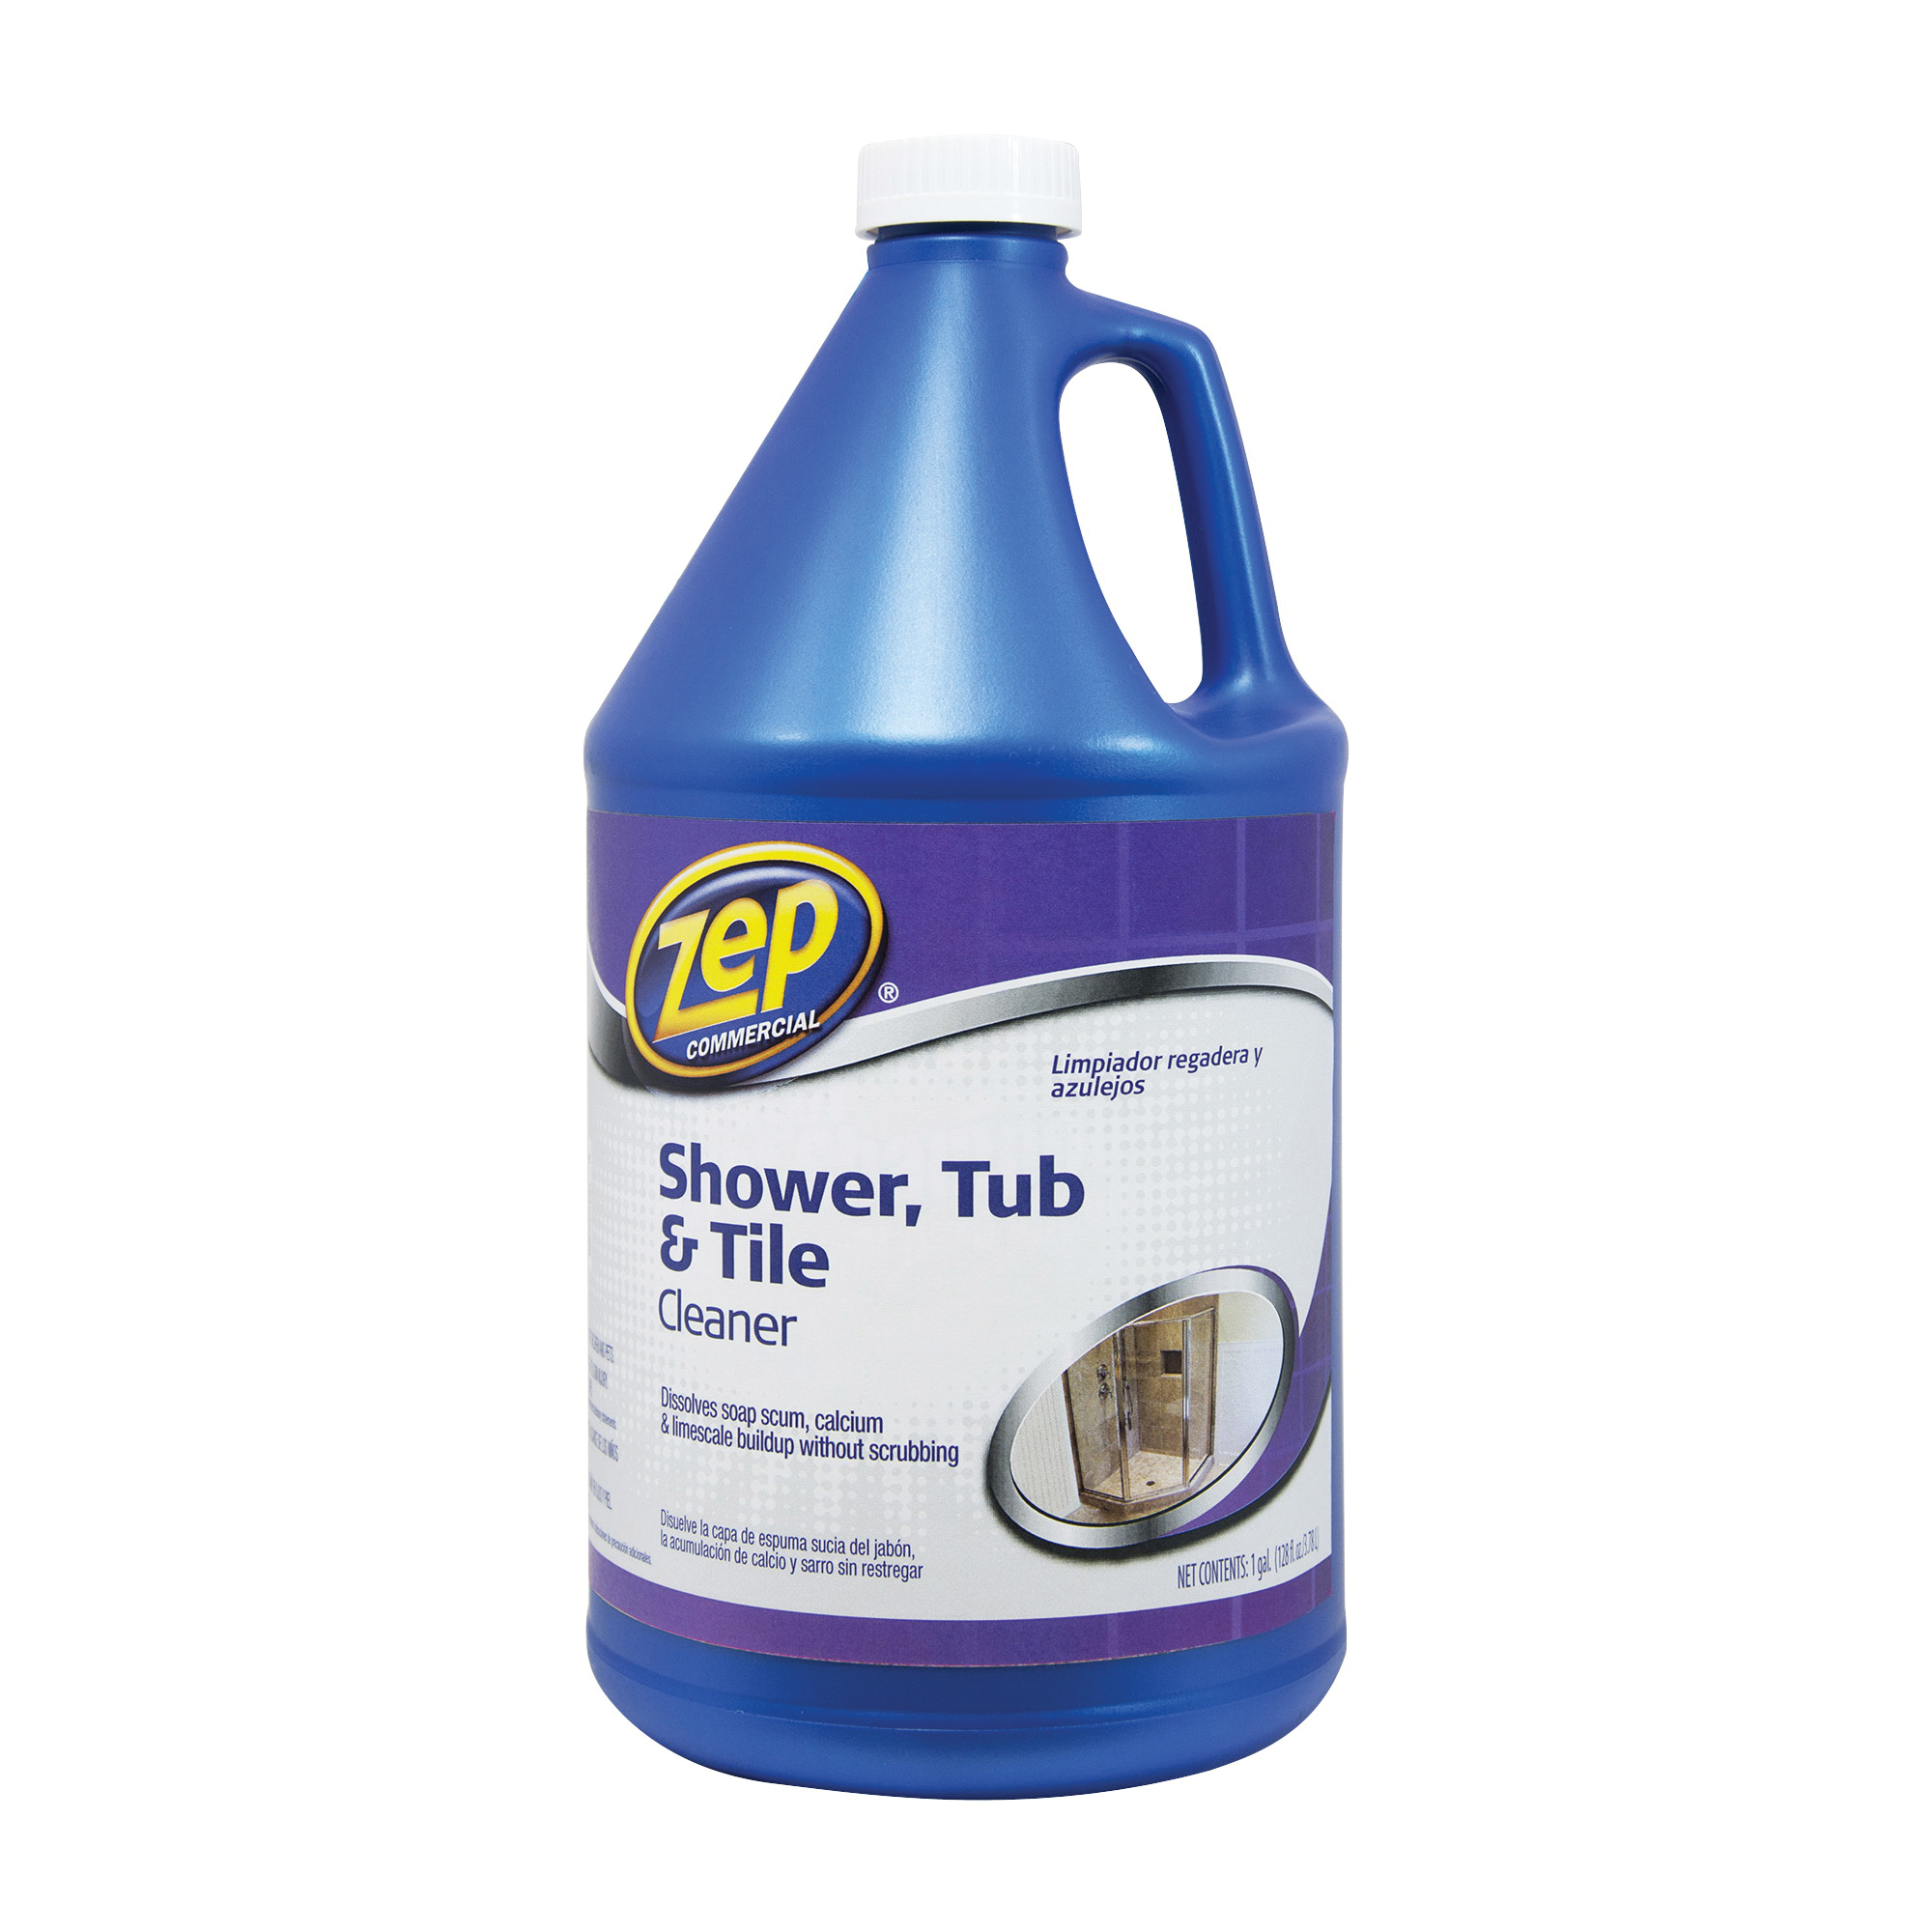 Picture of Zep ZUSTT128 Shower Tub and Tile Cleaner, 1 gal Package, Bottle, Liquid, Pleasant, Light Yellow